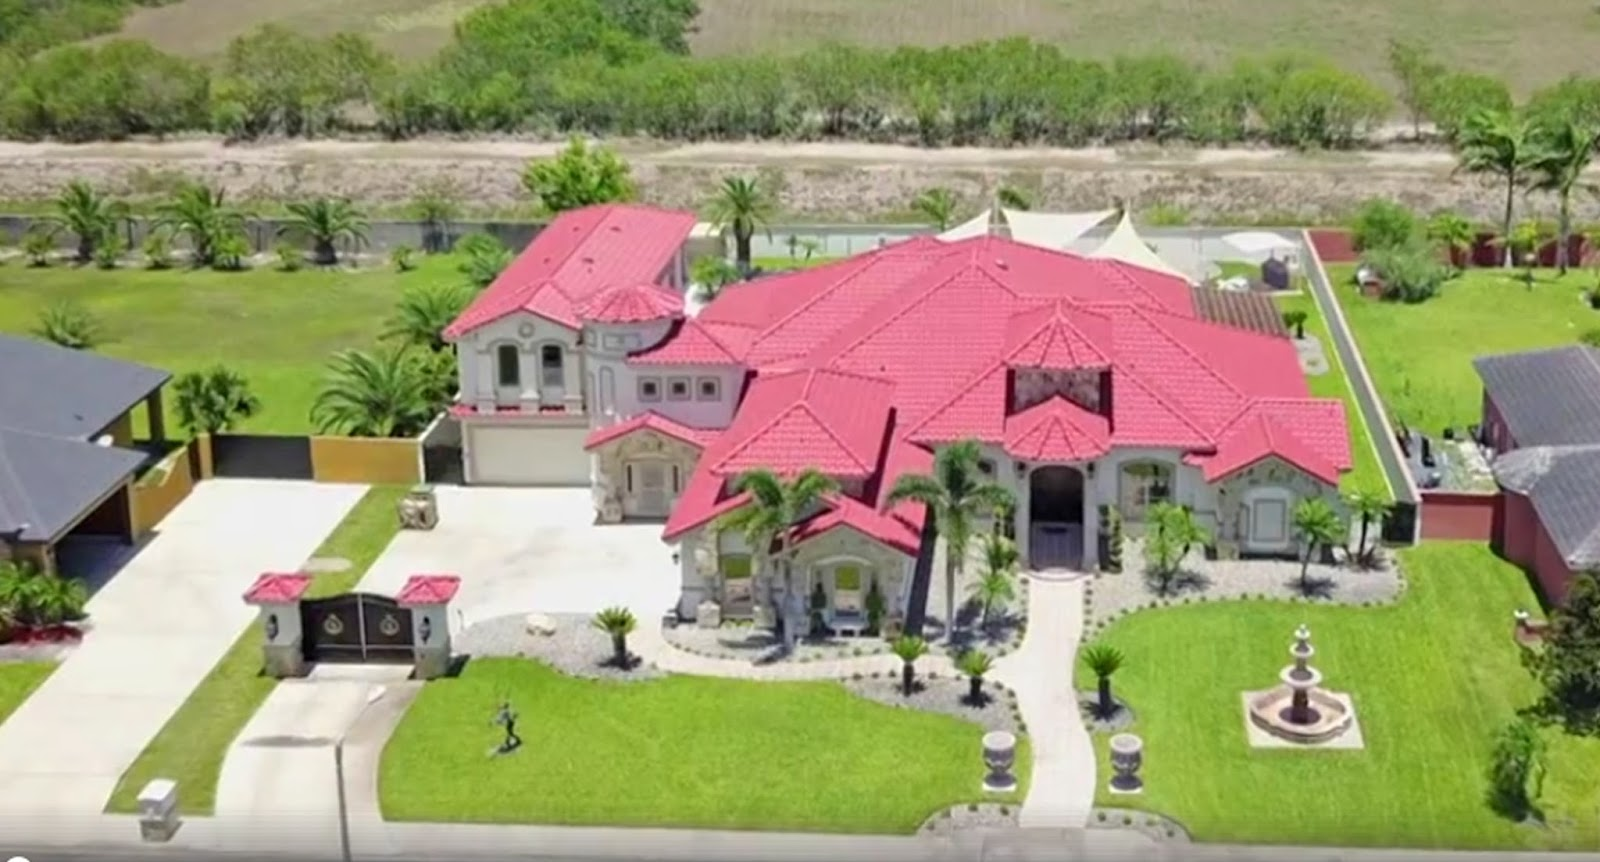 Stupendous Luxury Home For Sale 922 Natalie Street Weslaco Tx 78596 Home Remodeling Inspirations Genioncuboardxyz